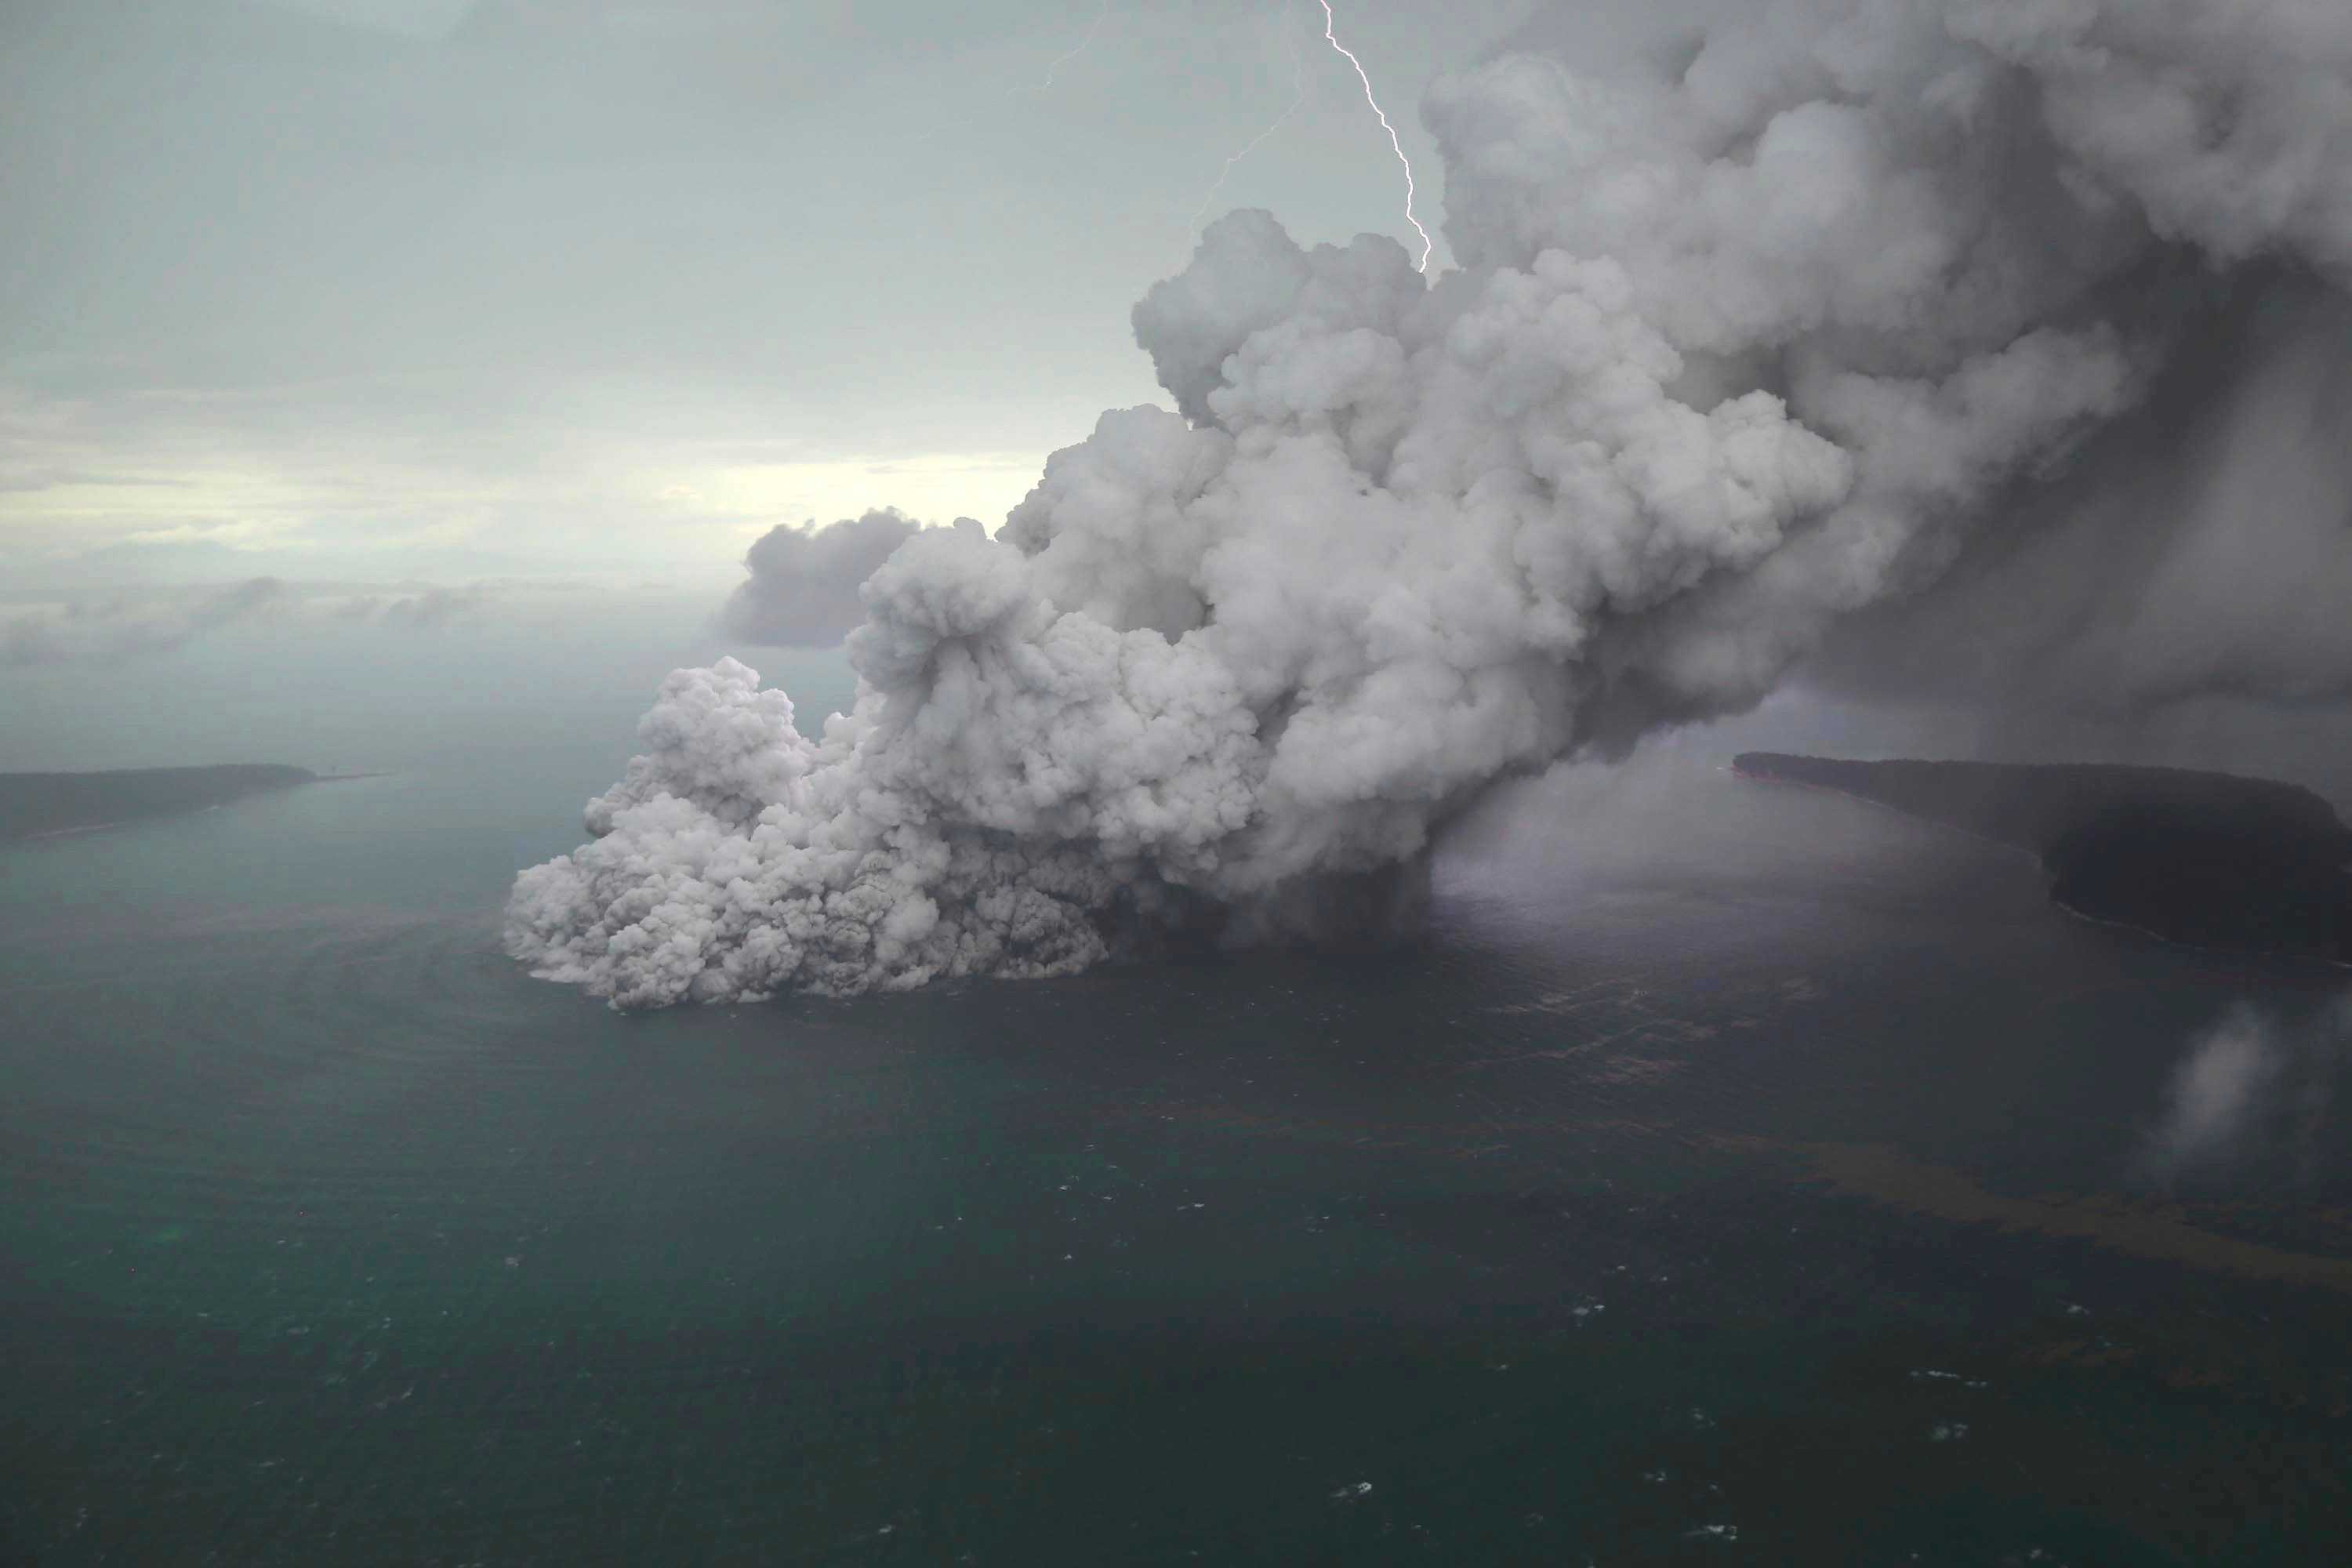 This aerial shot taken on Sunday, Dec. 23, 2018, shows volcanic material spew from the crater of Mount Anak Krakatau as it erupts on Java Strait, Indonesia. Doctors worked to save injured victims while hundreds of military and volunteers scoured debris-strewn beaches in search of survivors Monday, Dec. 24, 2018, after a deadly tsunami that followed an eruption and apparent landslide the volcano, one of the world's most infamous volcanic islands, gushed ashore without warning on Indonesian islands, killing hundreds of people on a busy holiday weekend. (Nurul Hidayat/Bisnis Indonesia via AP)